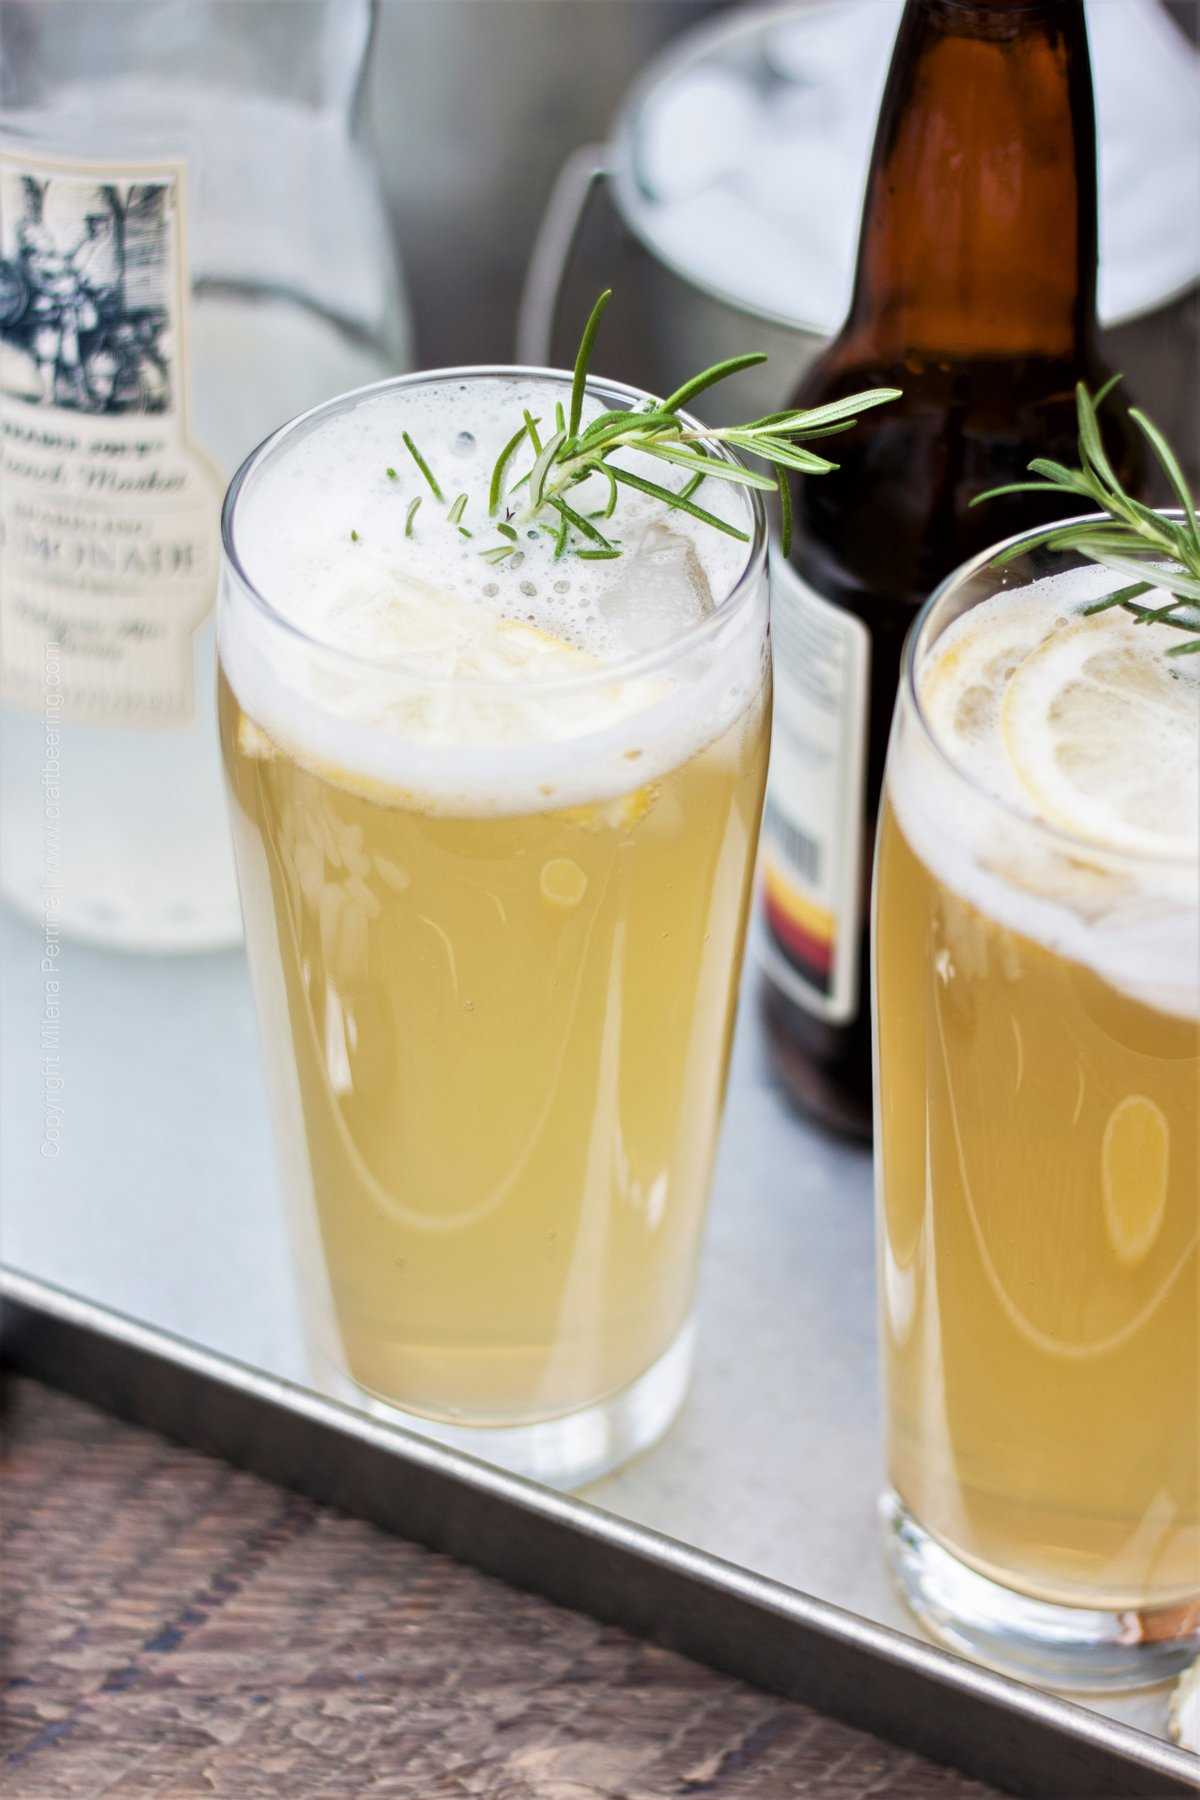 Radler Bier with Pilsner and Sparkling Lemonade. Garnish with rosemary and lemon slices for extra refreshing flavors.